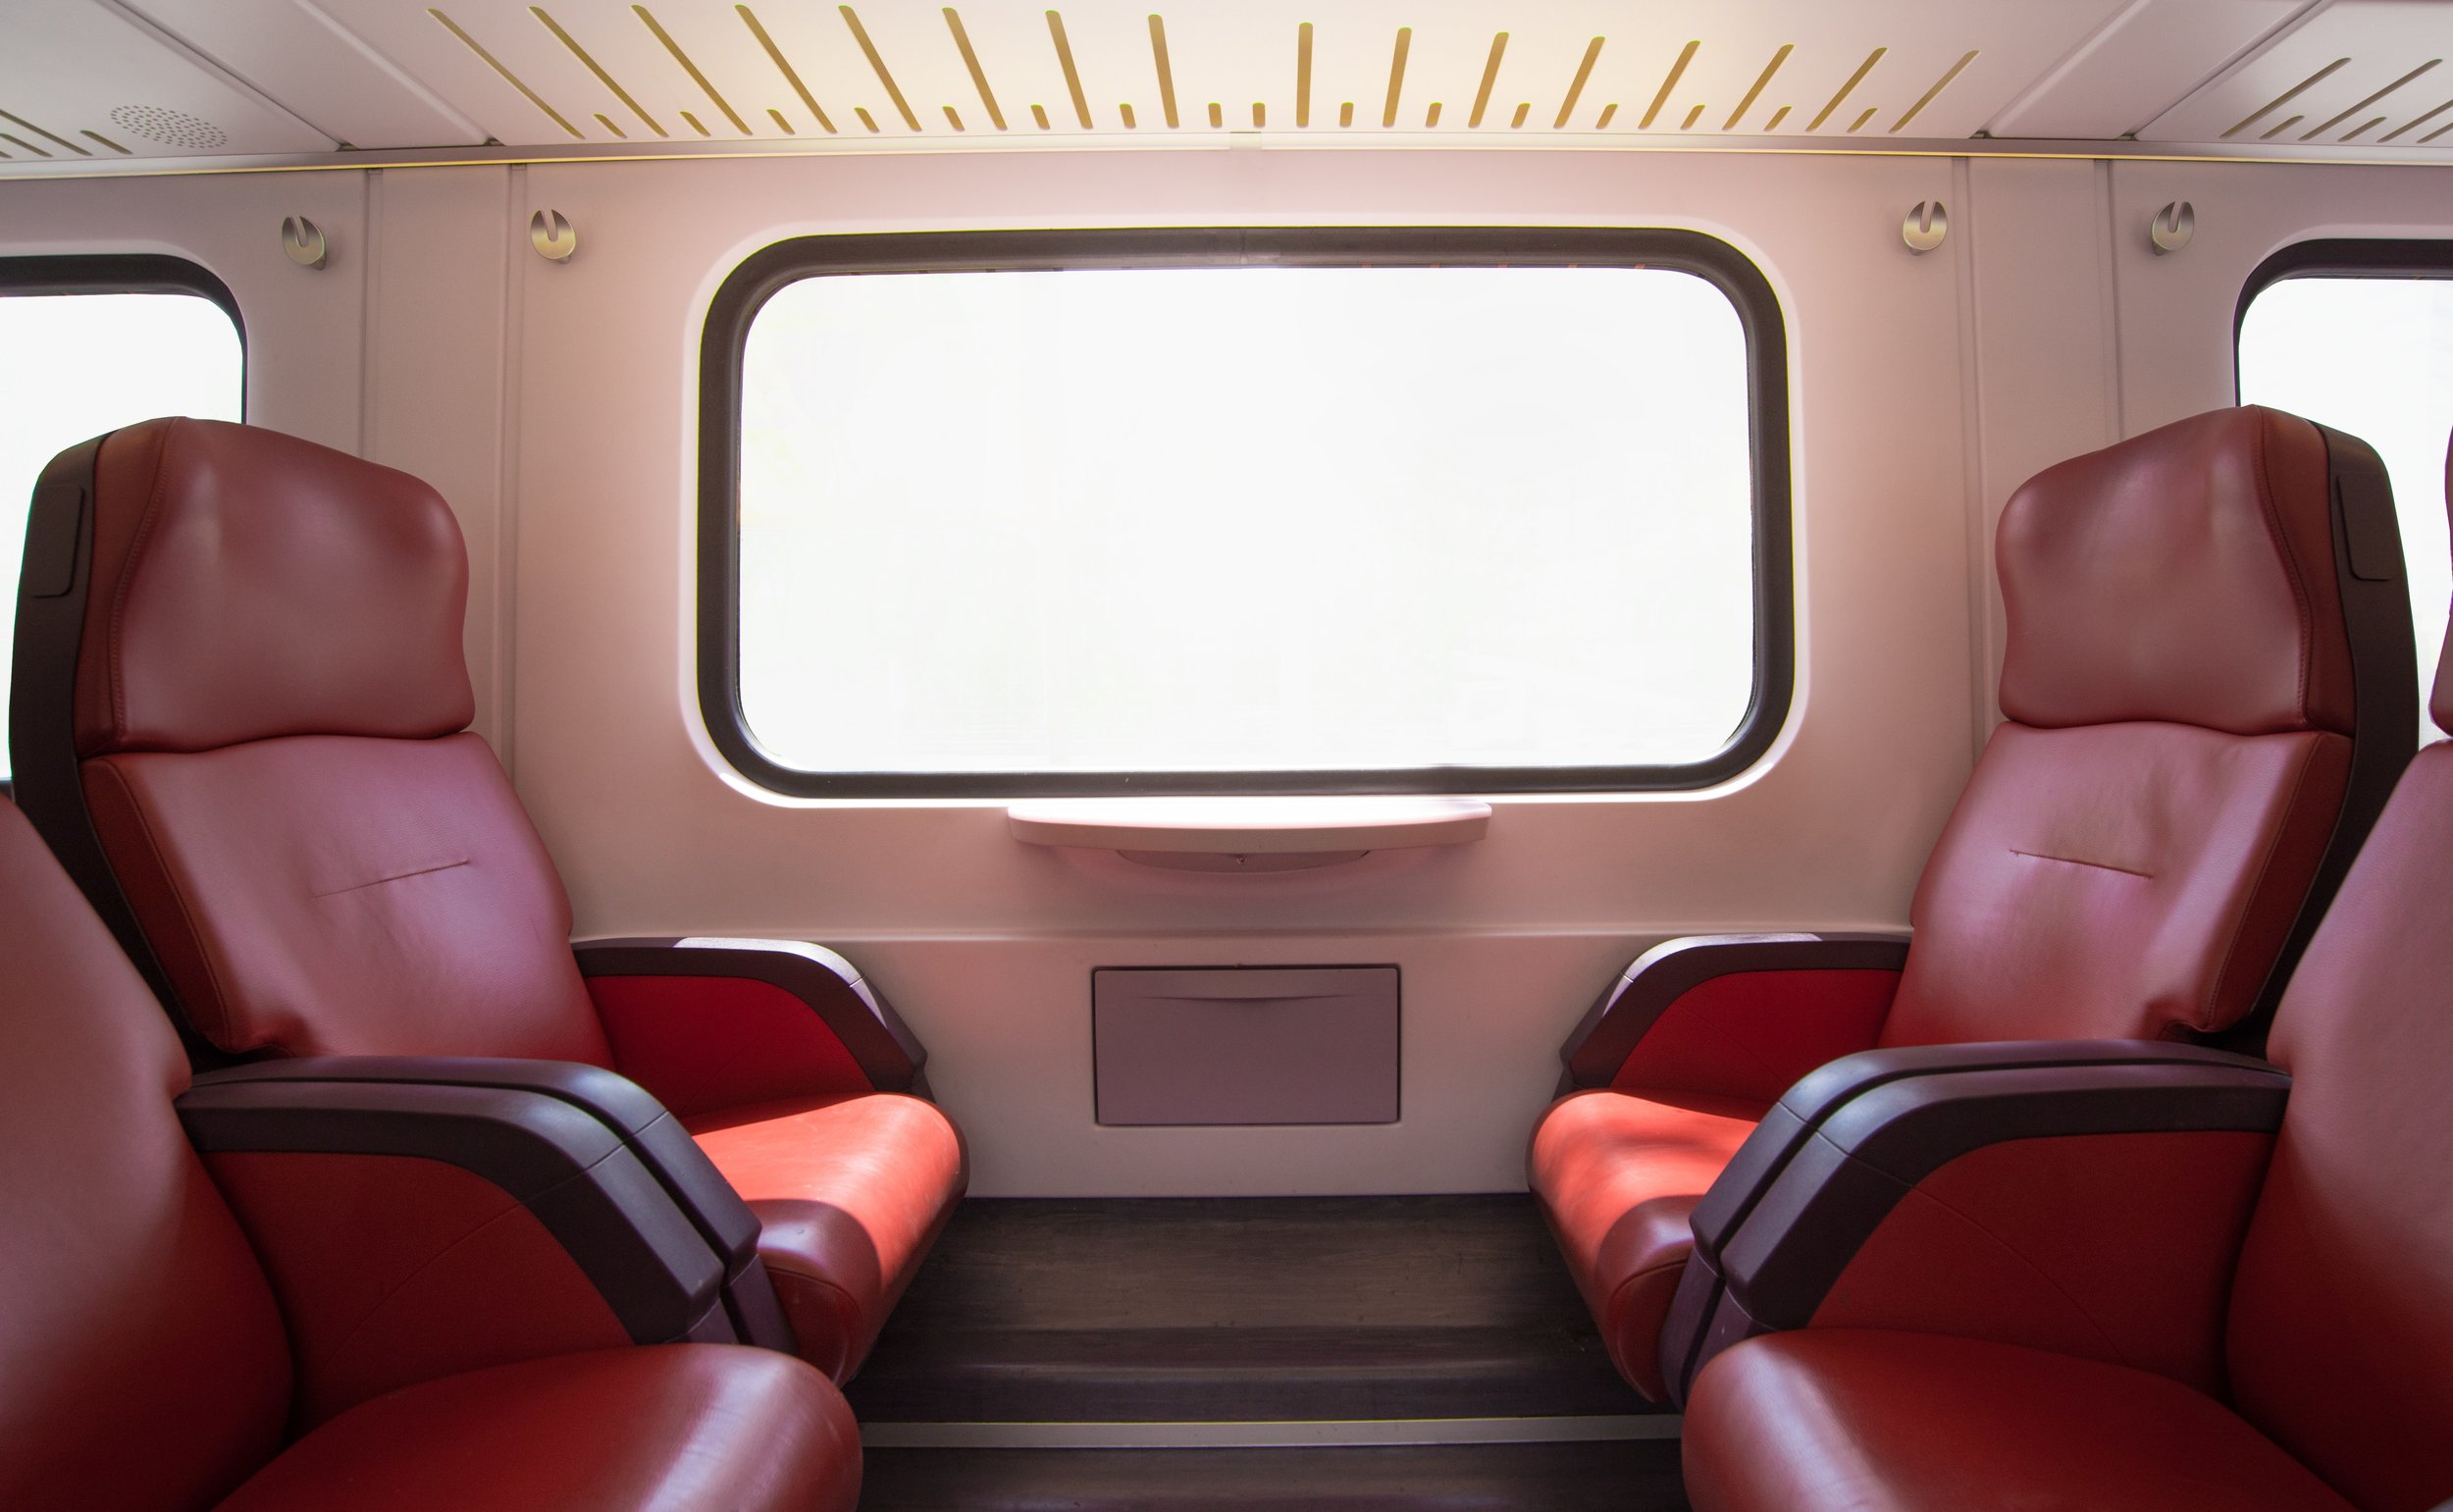 pexels-train-window.-opaque.jpg